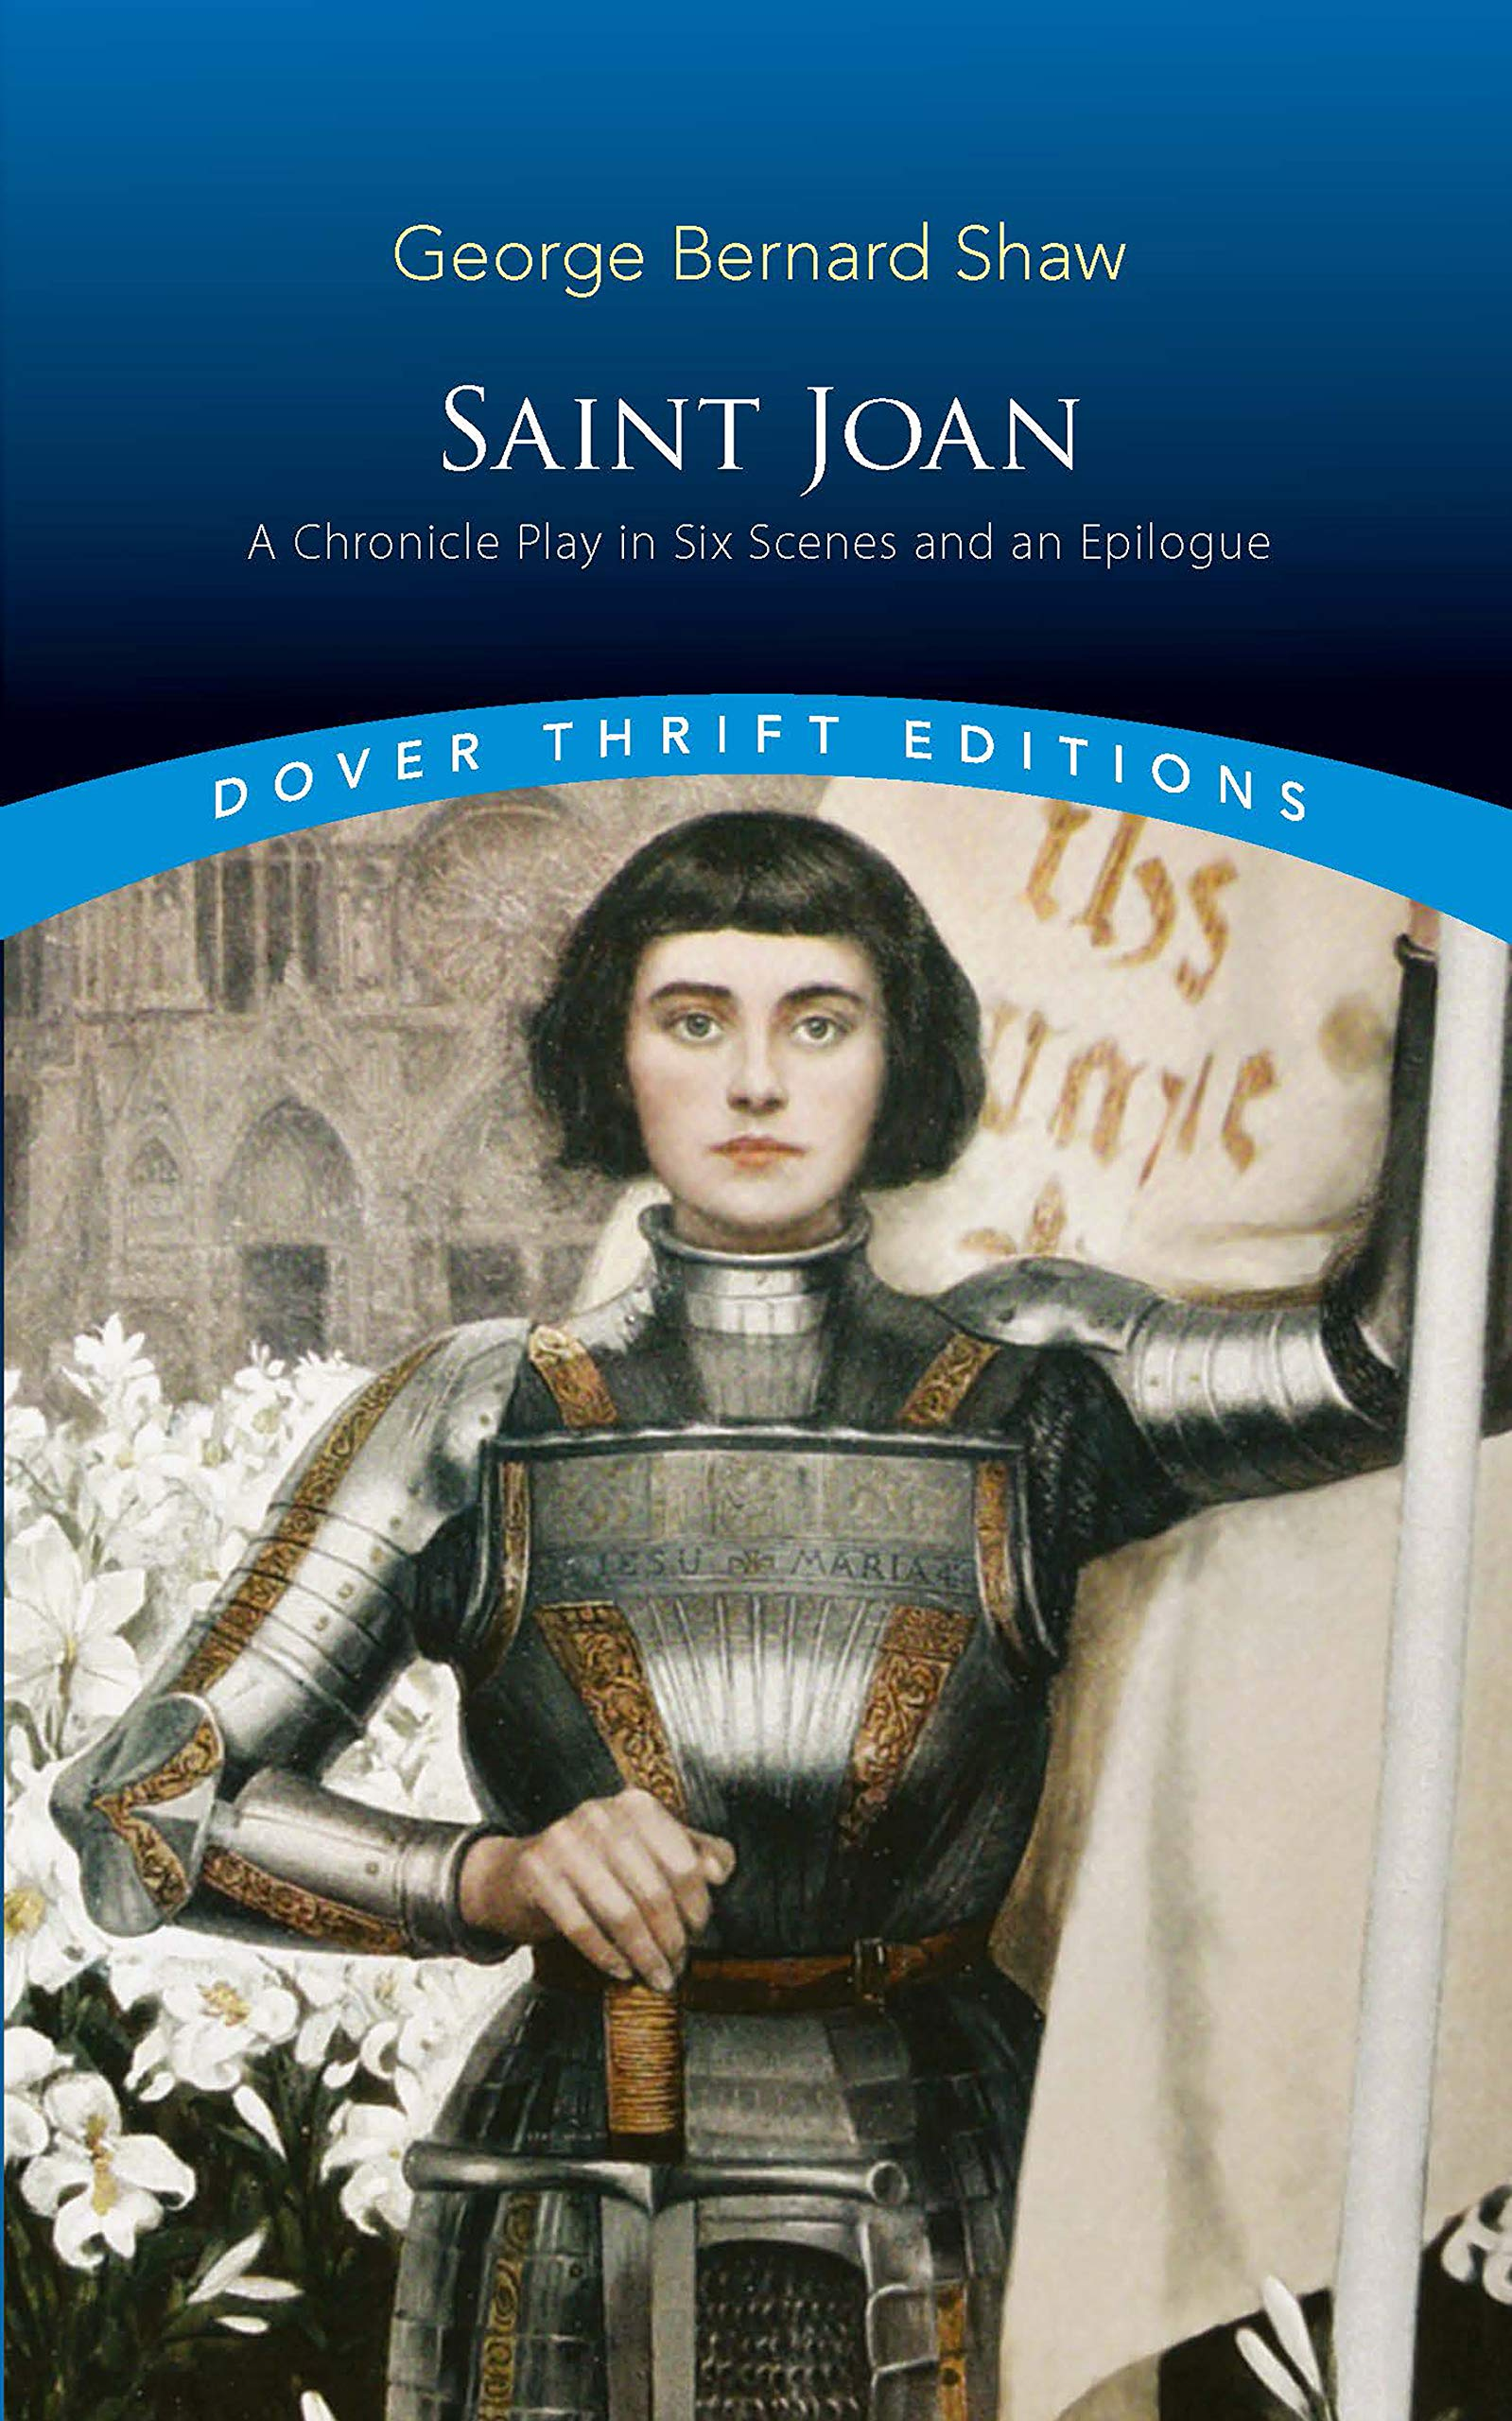 Saint Joan: A Chronicle Play in Six Scenes and an Epilogue (Dover Thrift Editions)